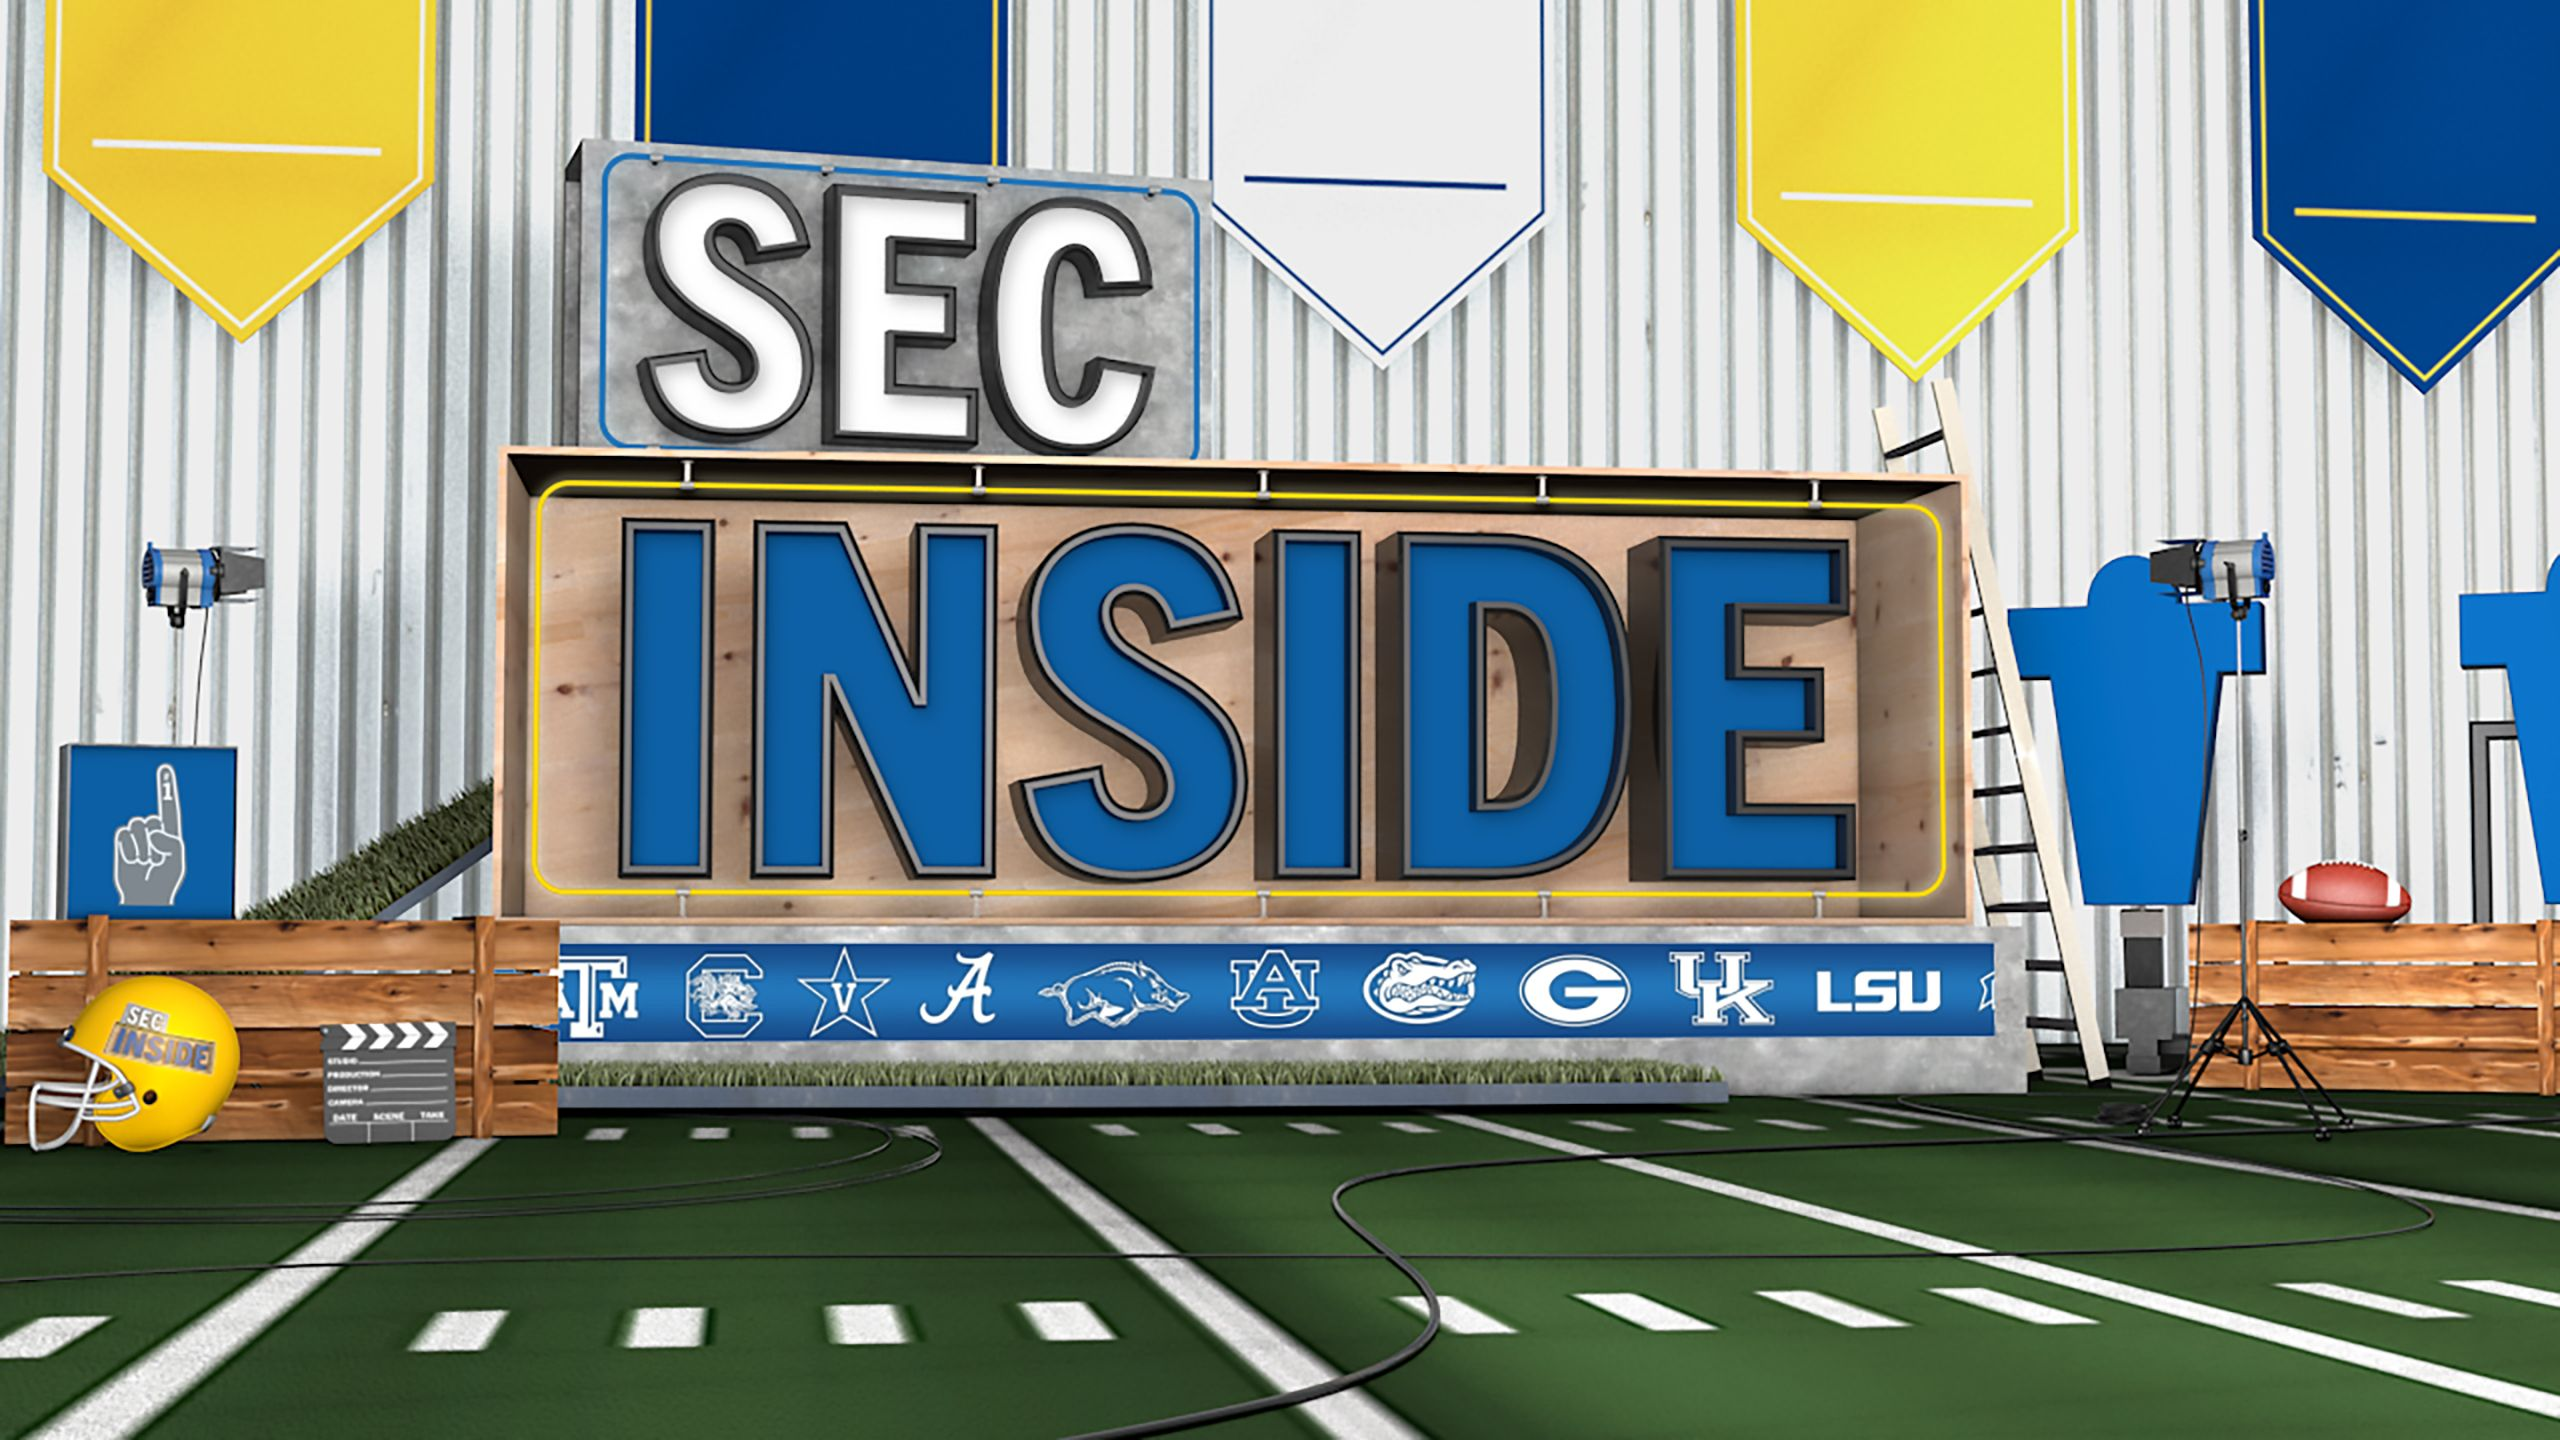 SEC Inside: Florida vs. Kentucky Presented by Regions Bank